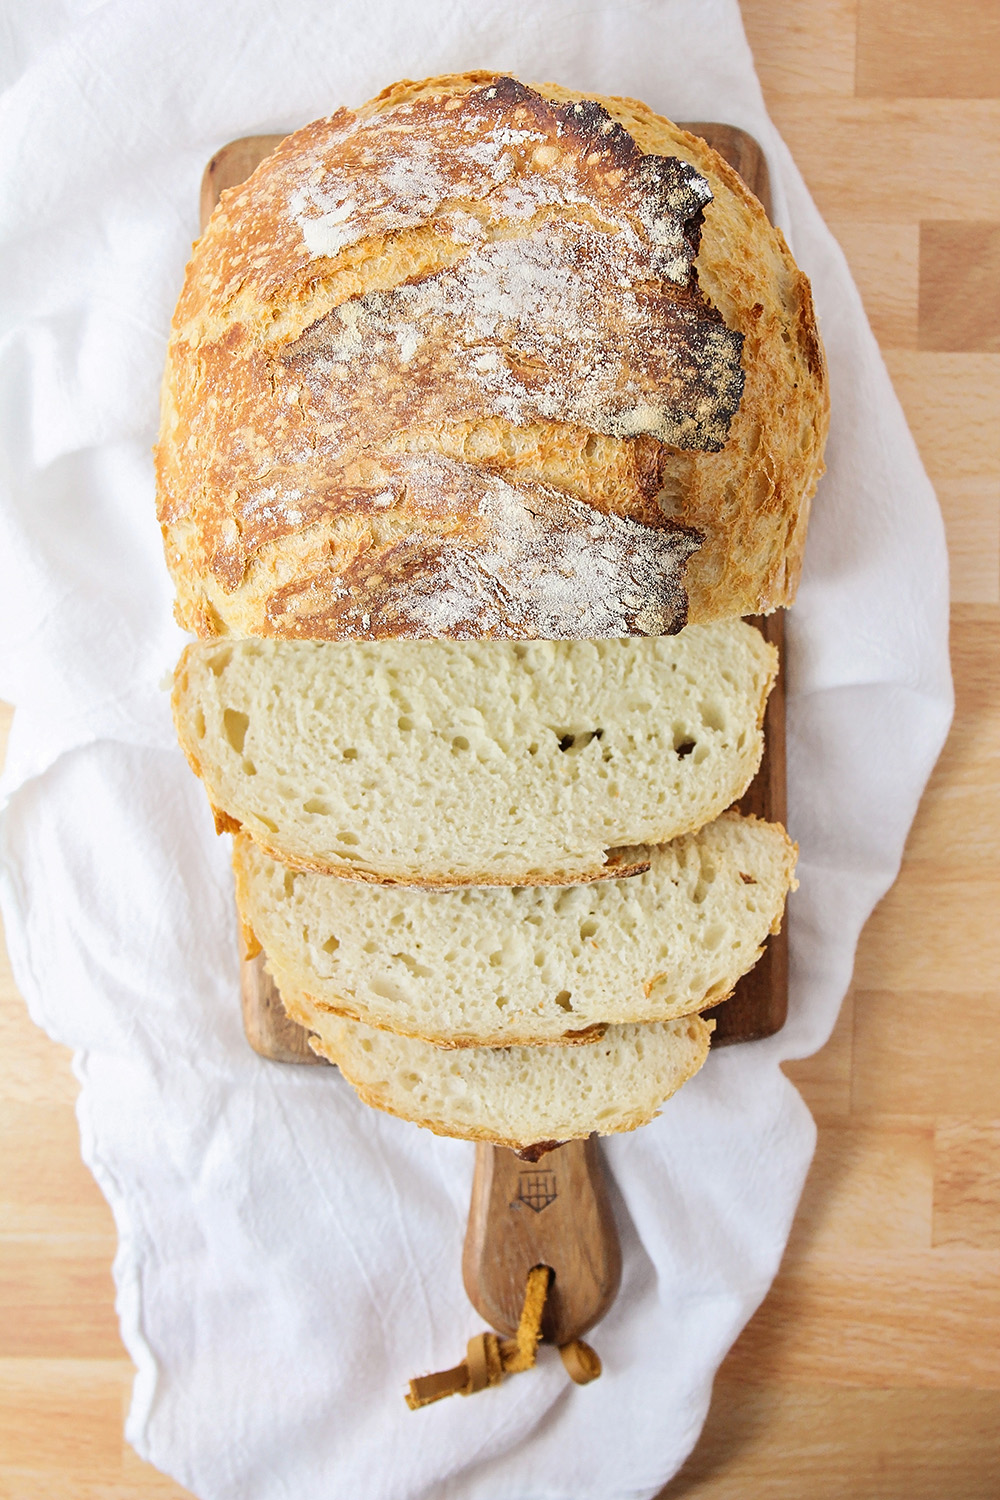 This easy no-knead artisan bread is so simple to make, and tastes just like it came from the bakery!